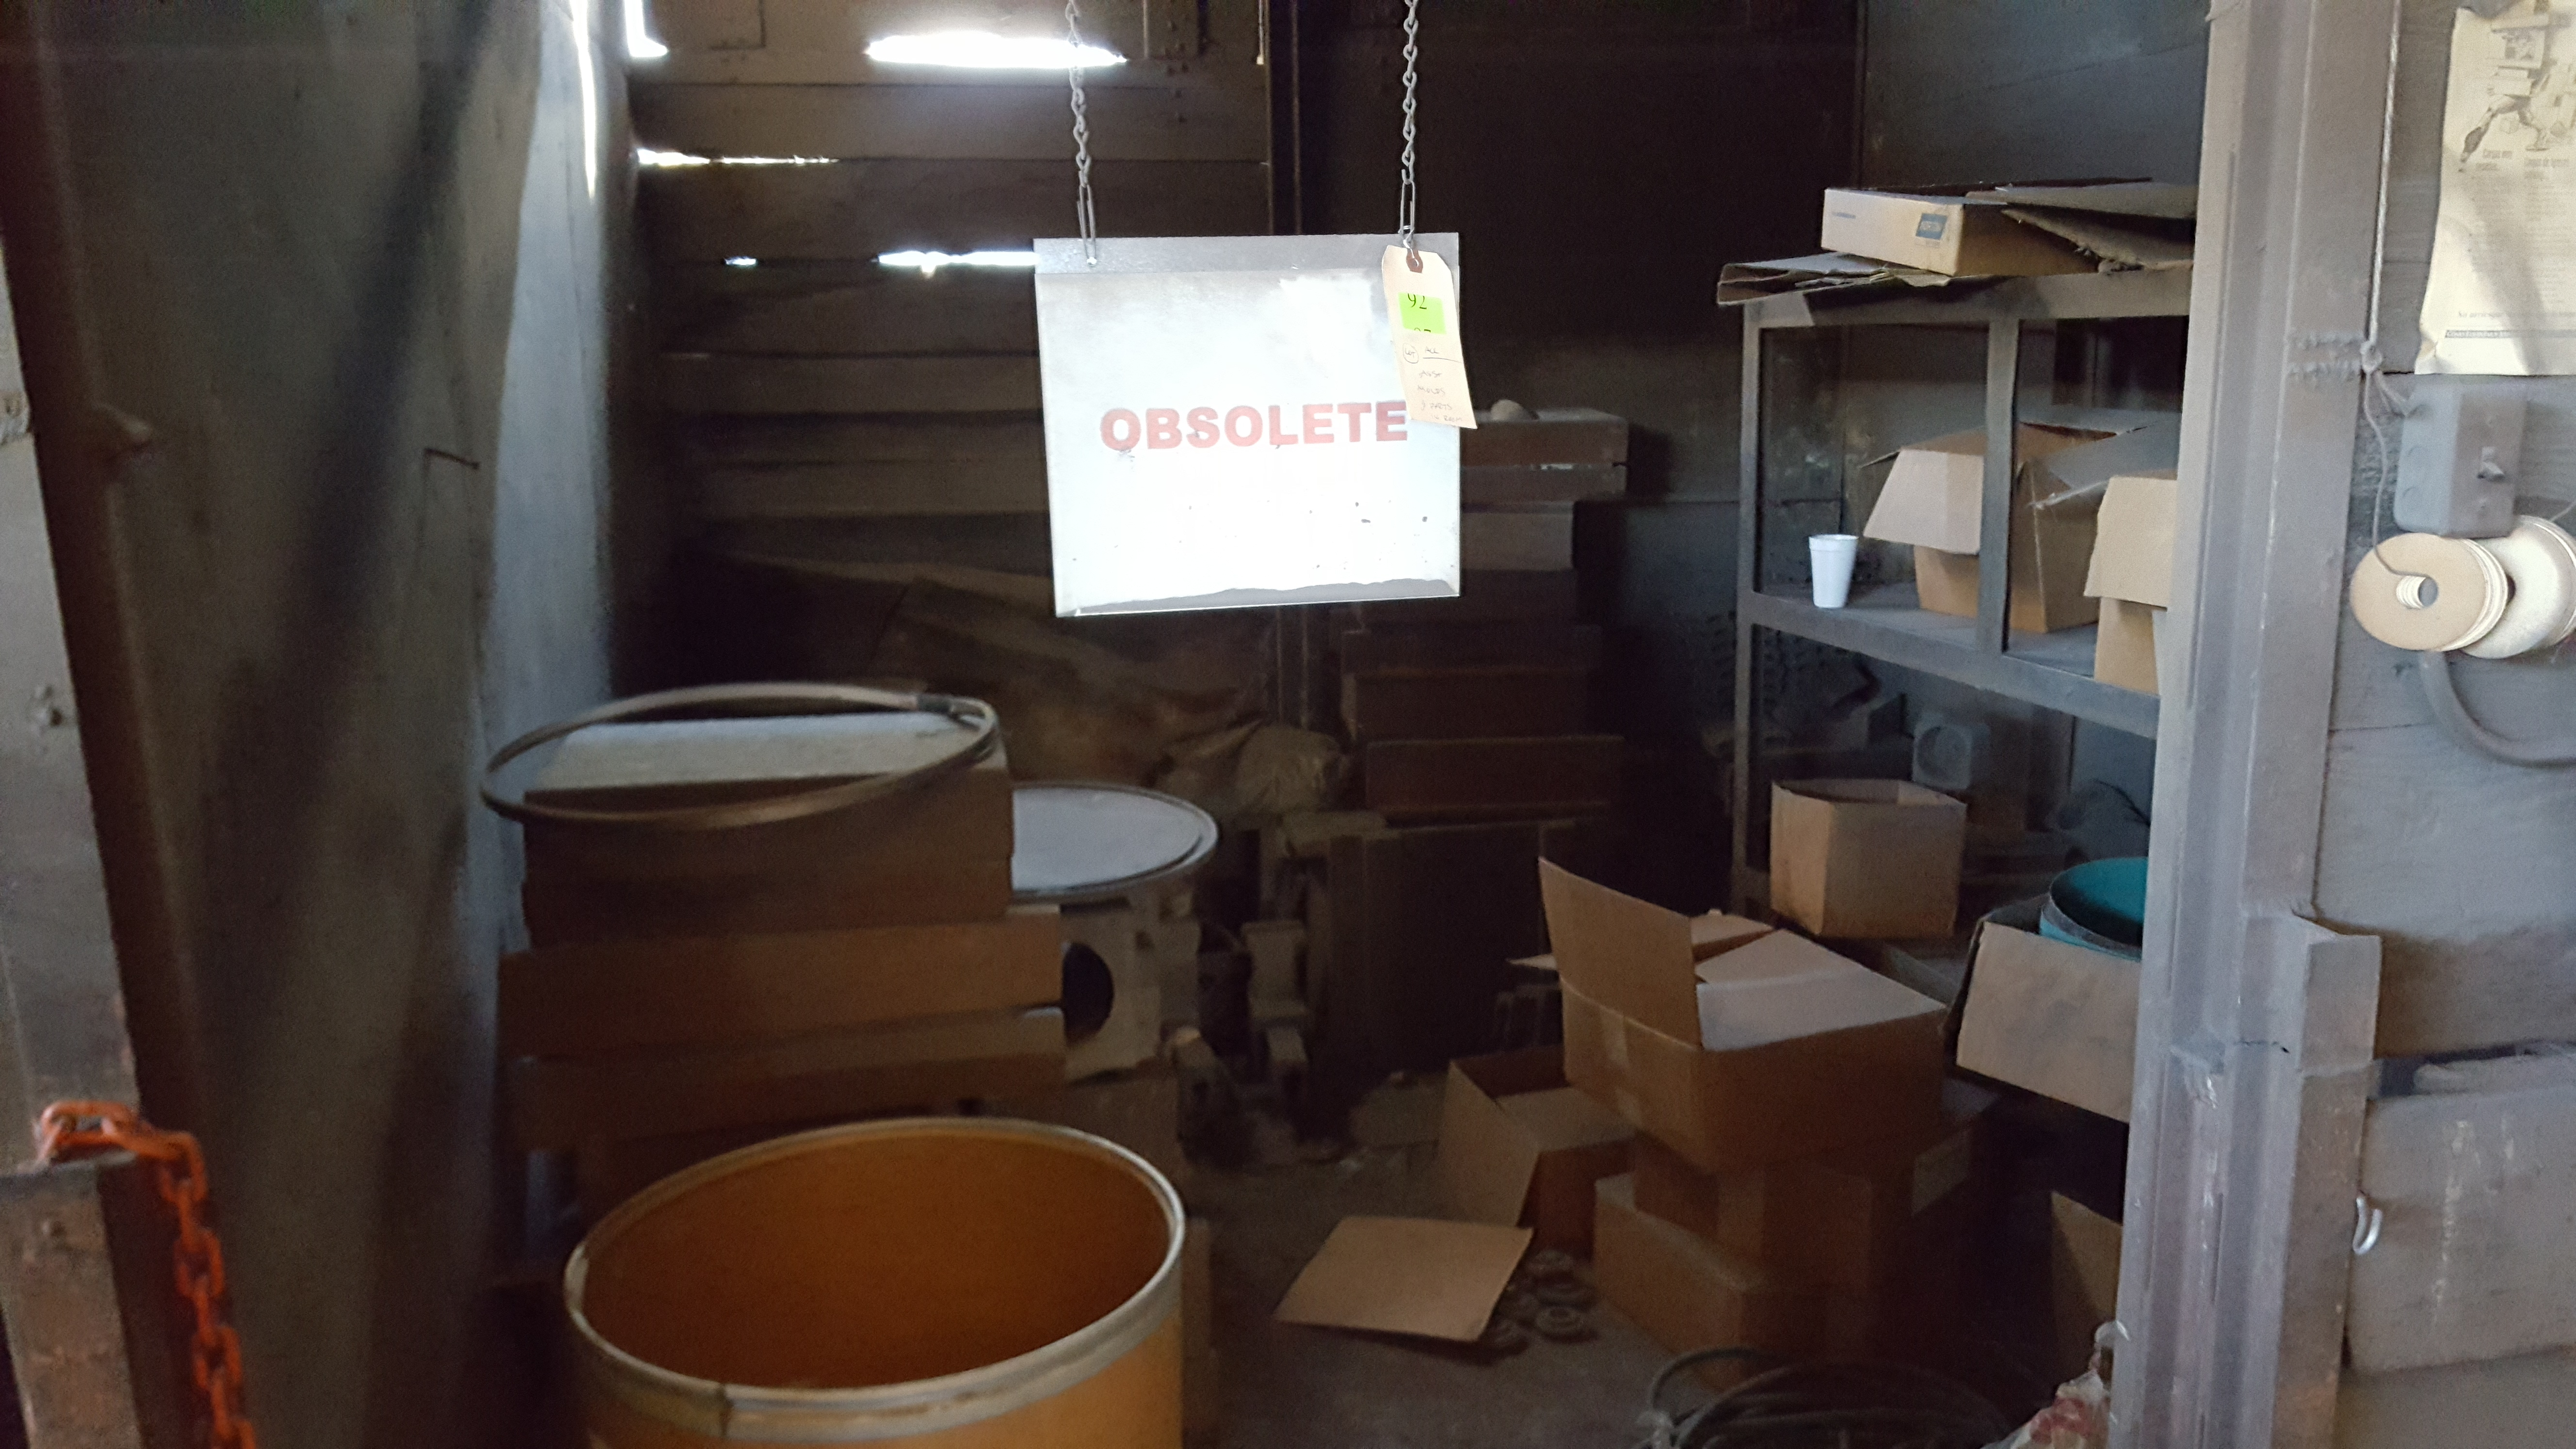 Lot 92 - ALL ASST PARTS AND MOLDS IN ROOM